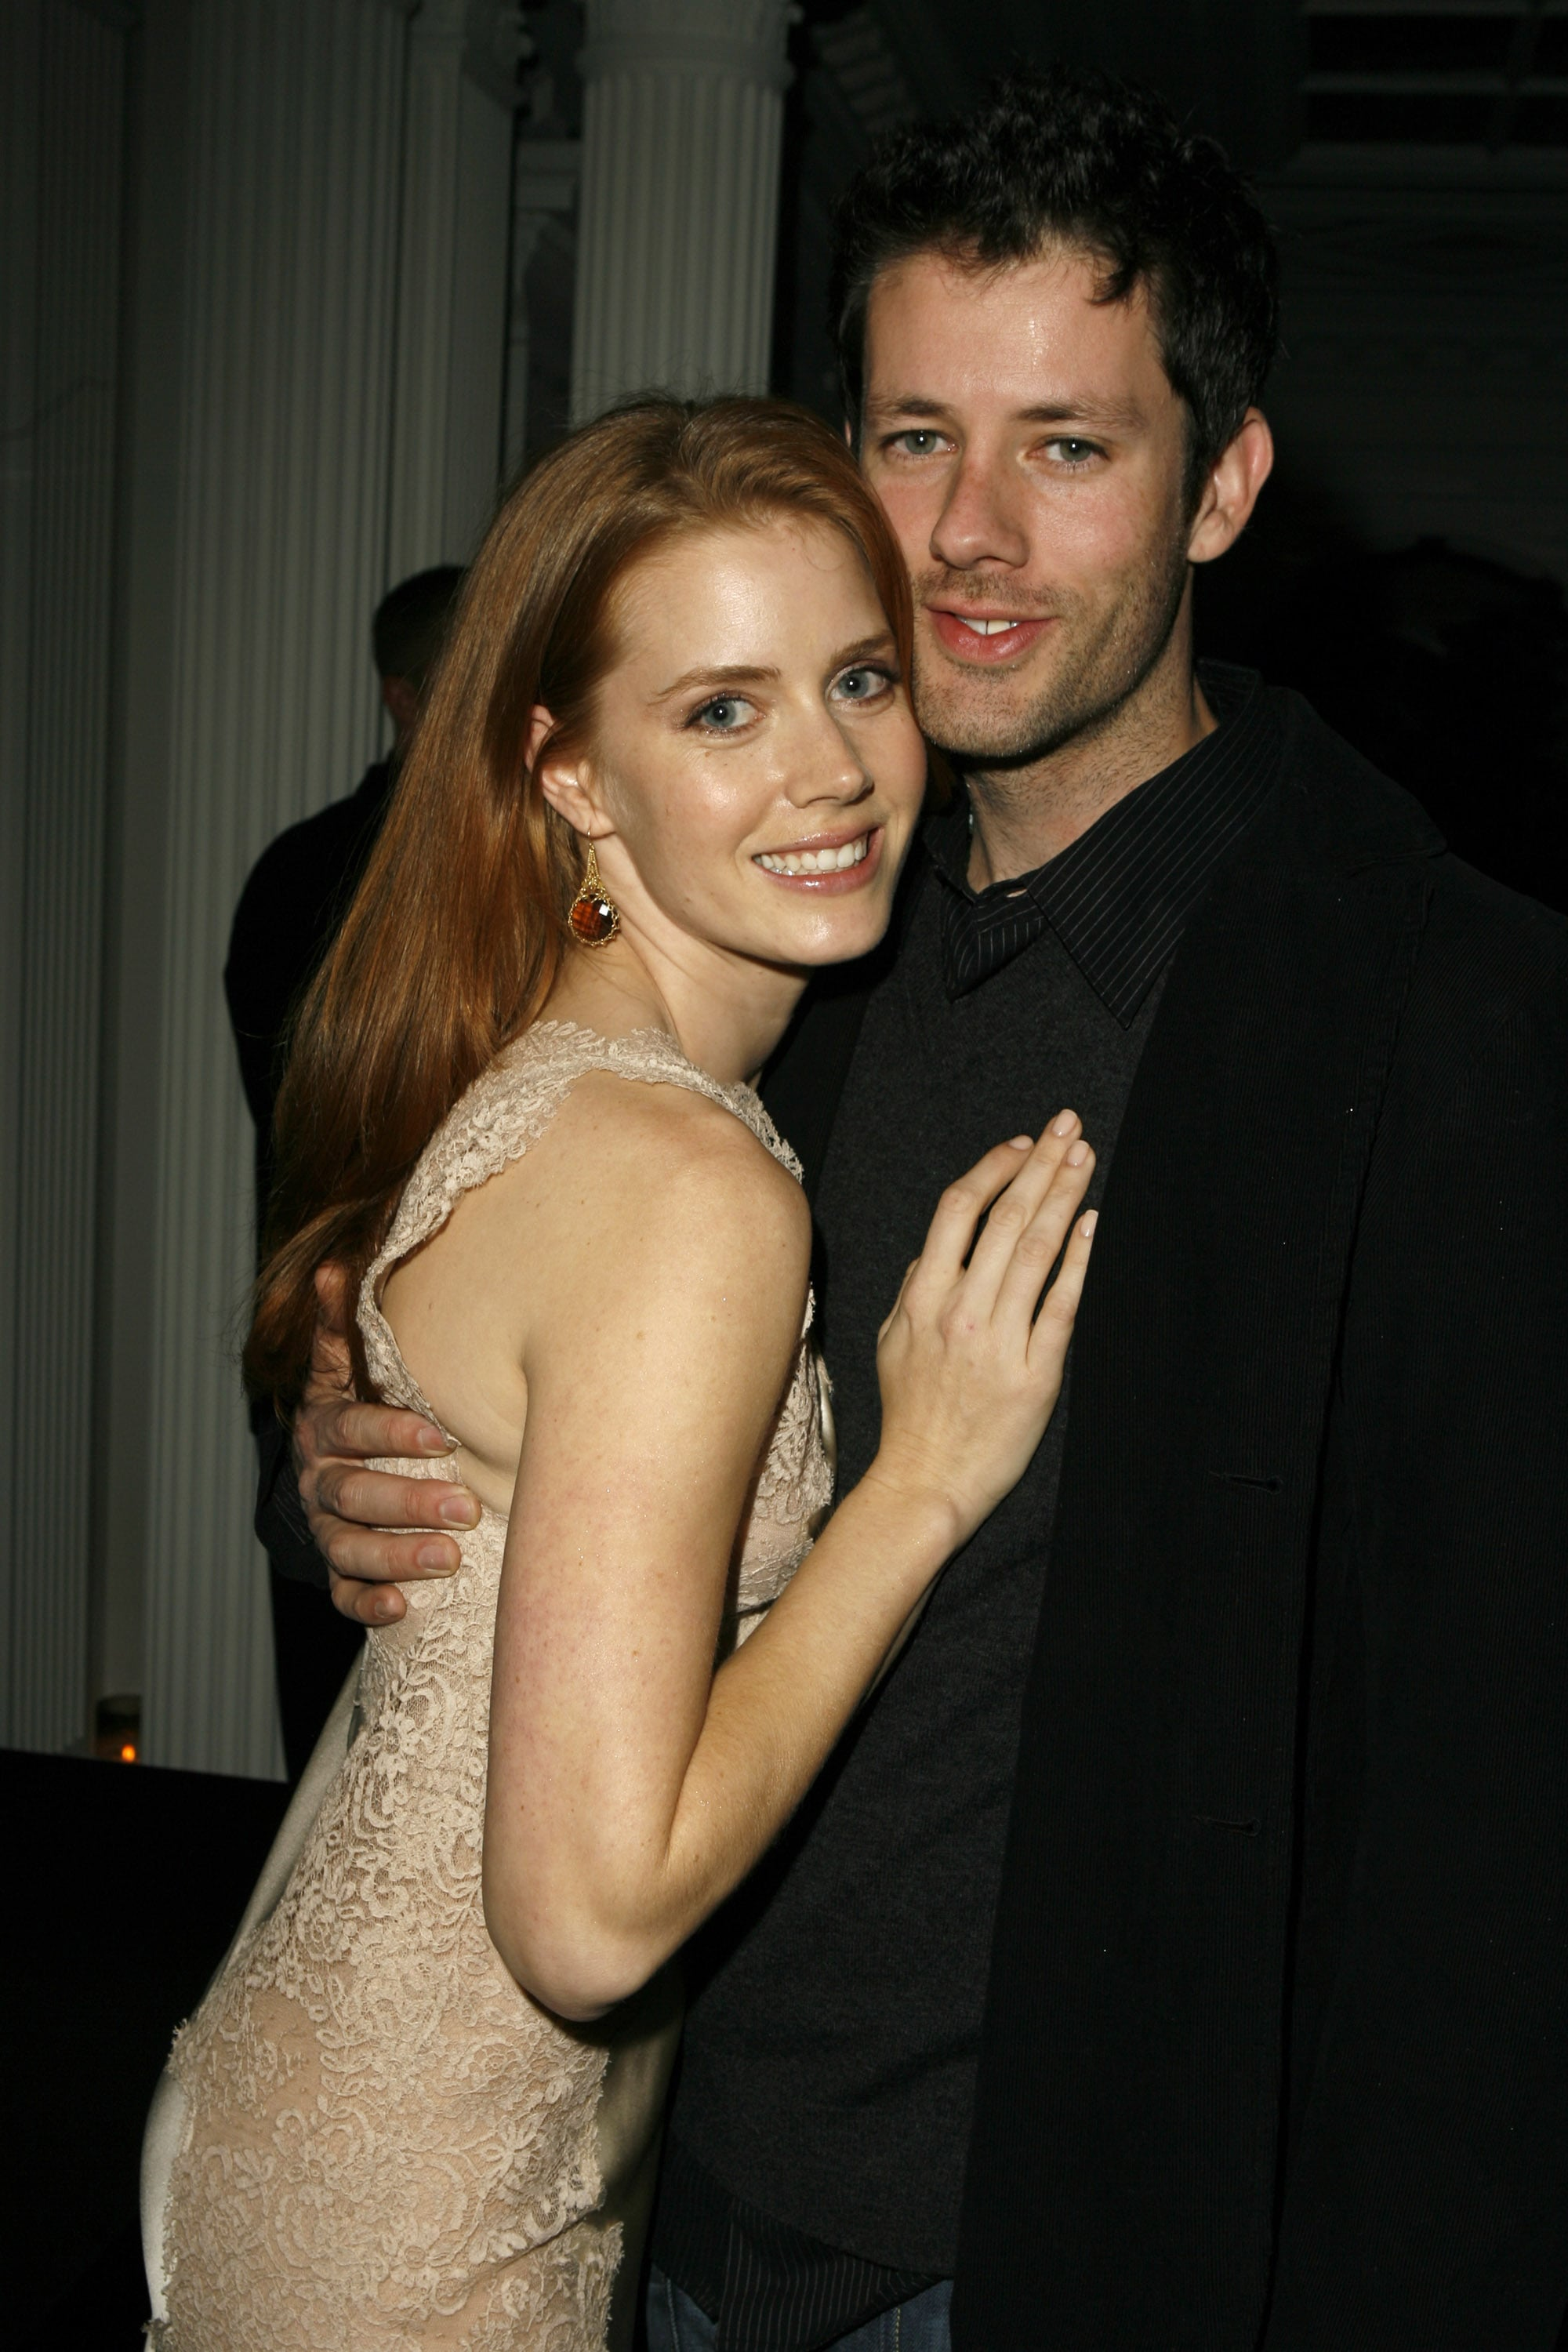 In 2006, the pair cozied up for a photo at a GQ event for Golden Globe nominees.